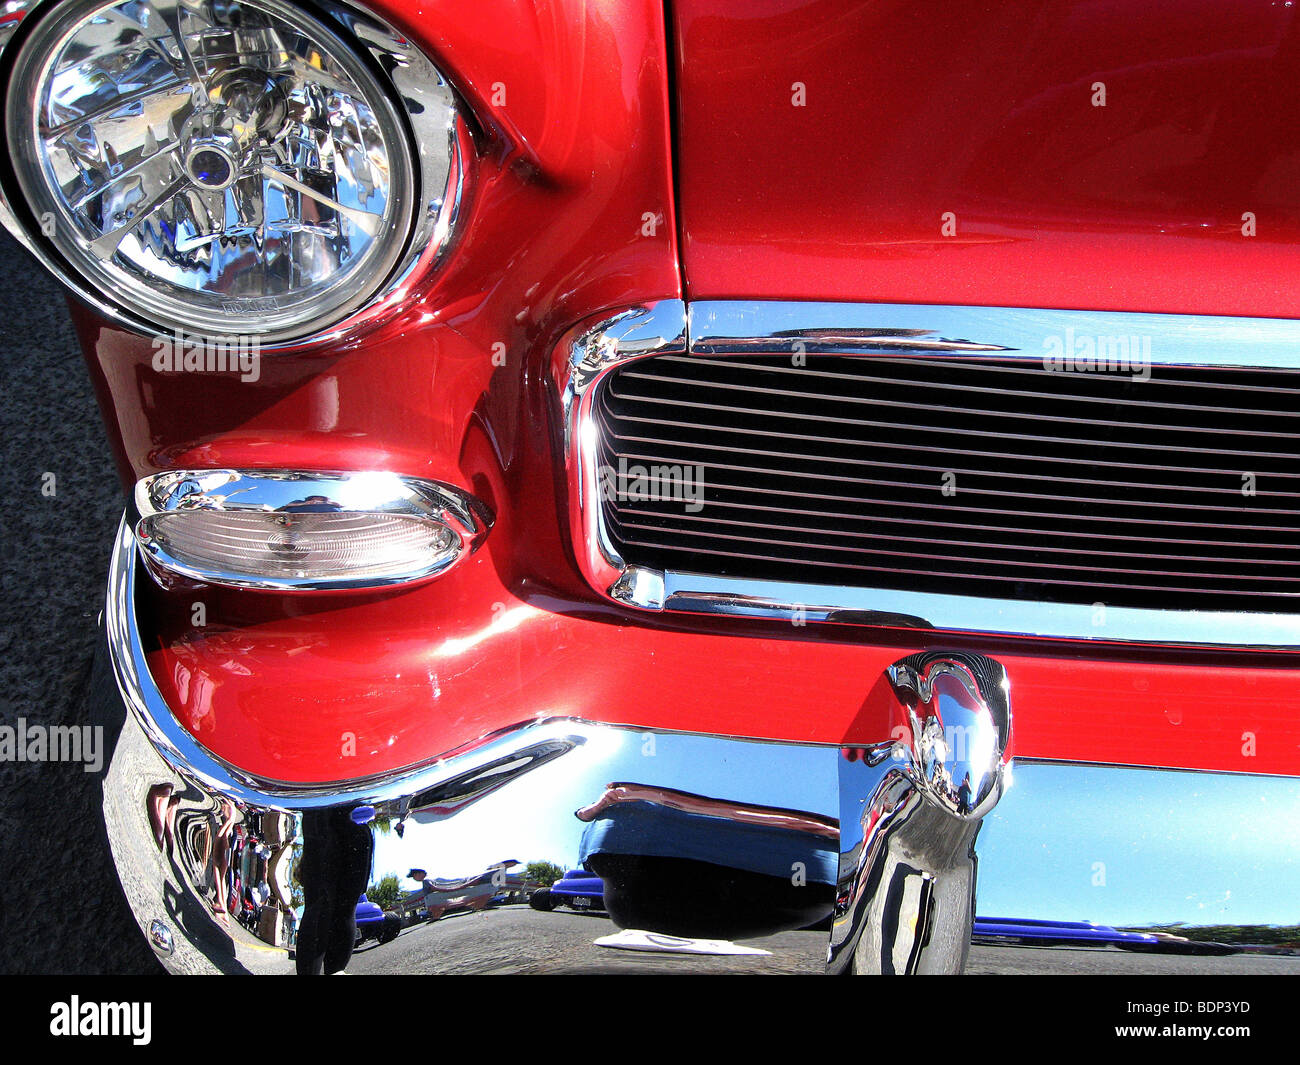 The front of a red car with shiny chrome bumper and grill - Stock Image